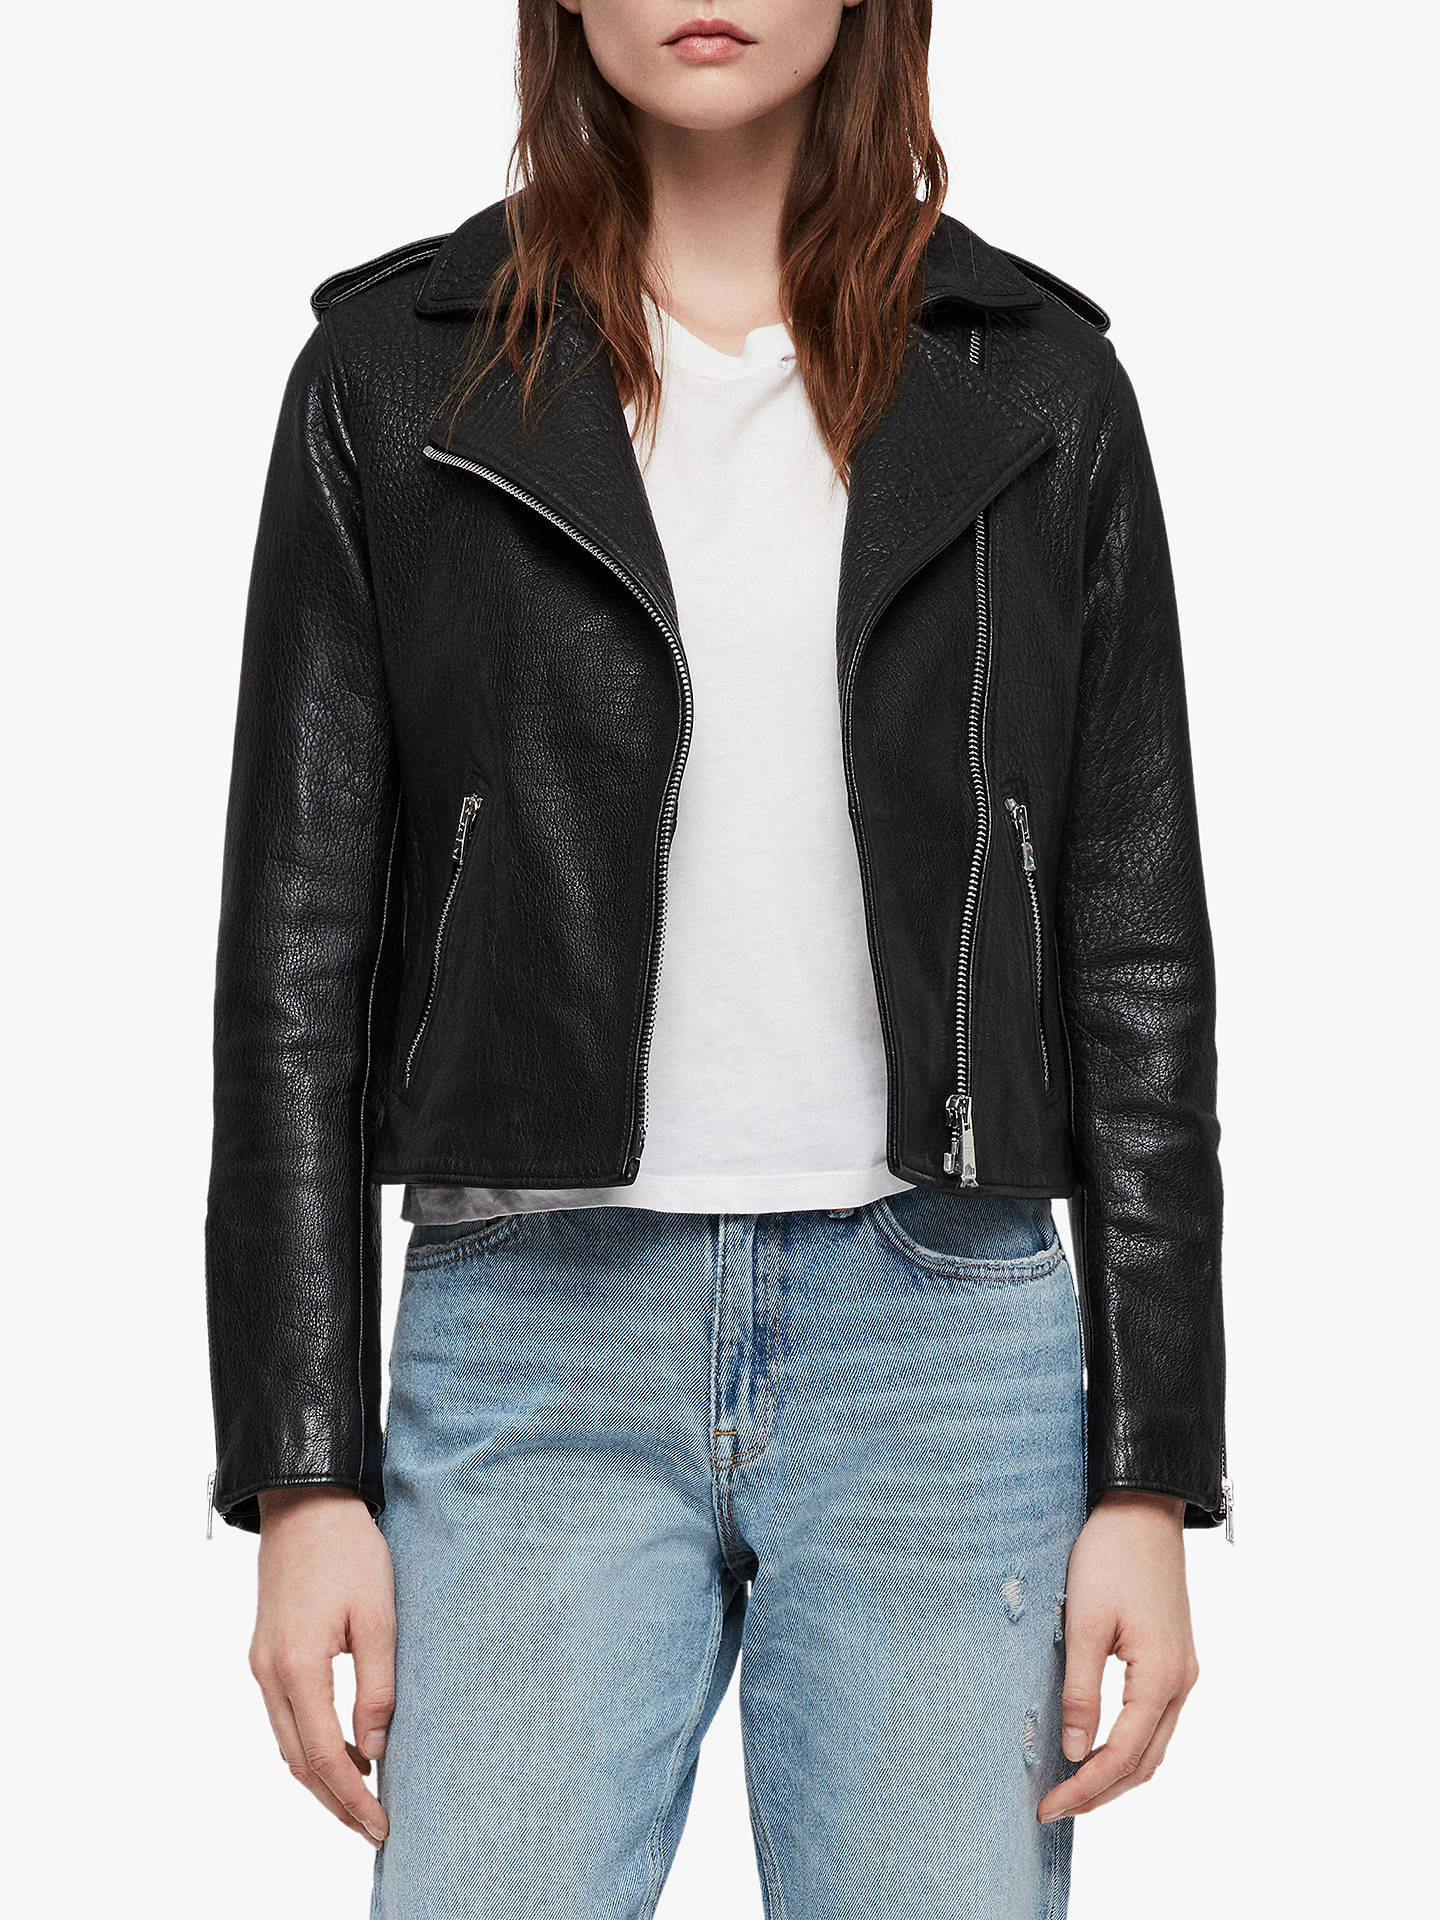 BuyAllSaints Leather Hadi Biker Jacket, Black, 10 Online at johnlewis.com